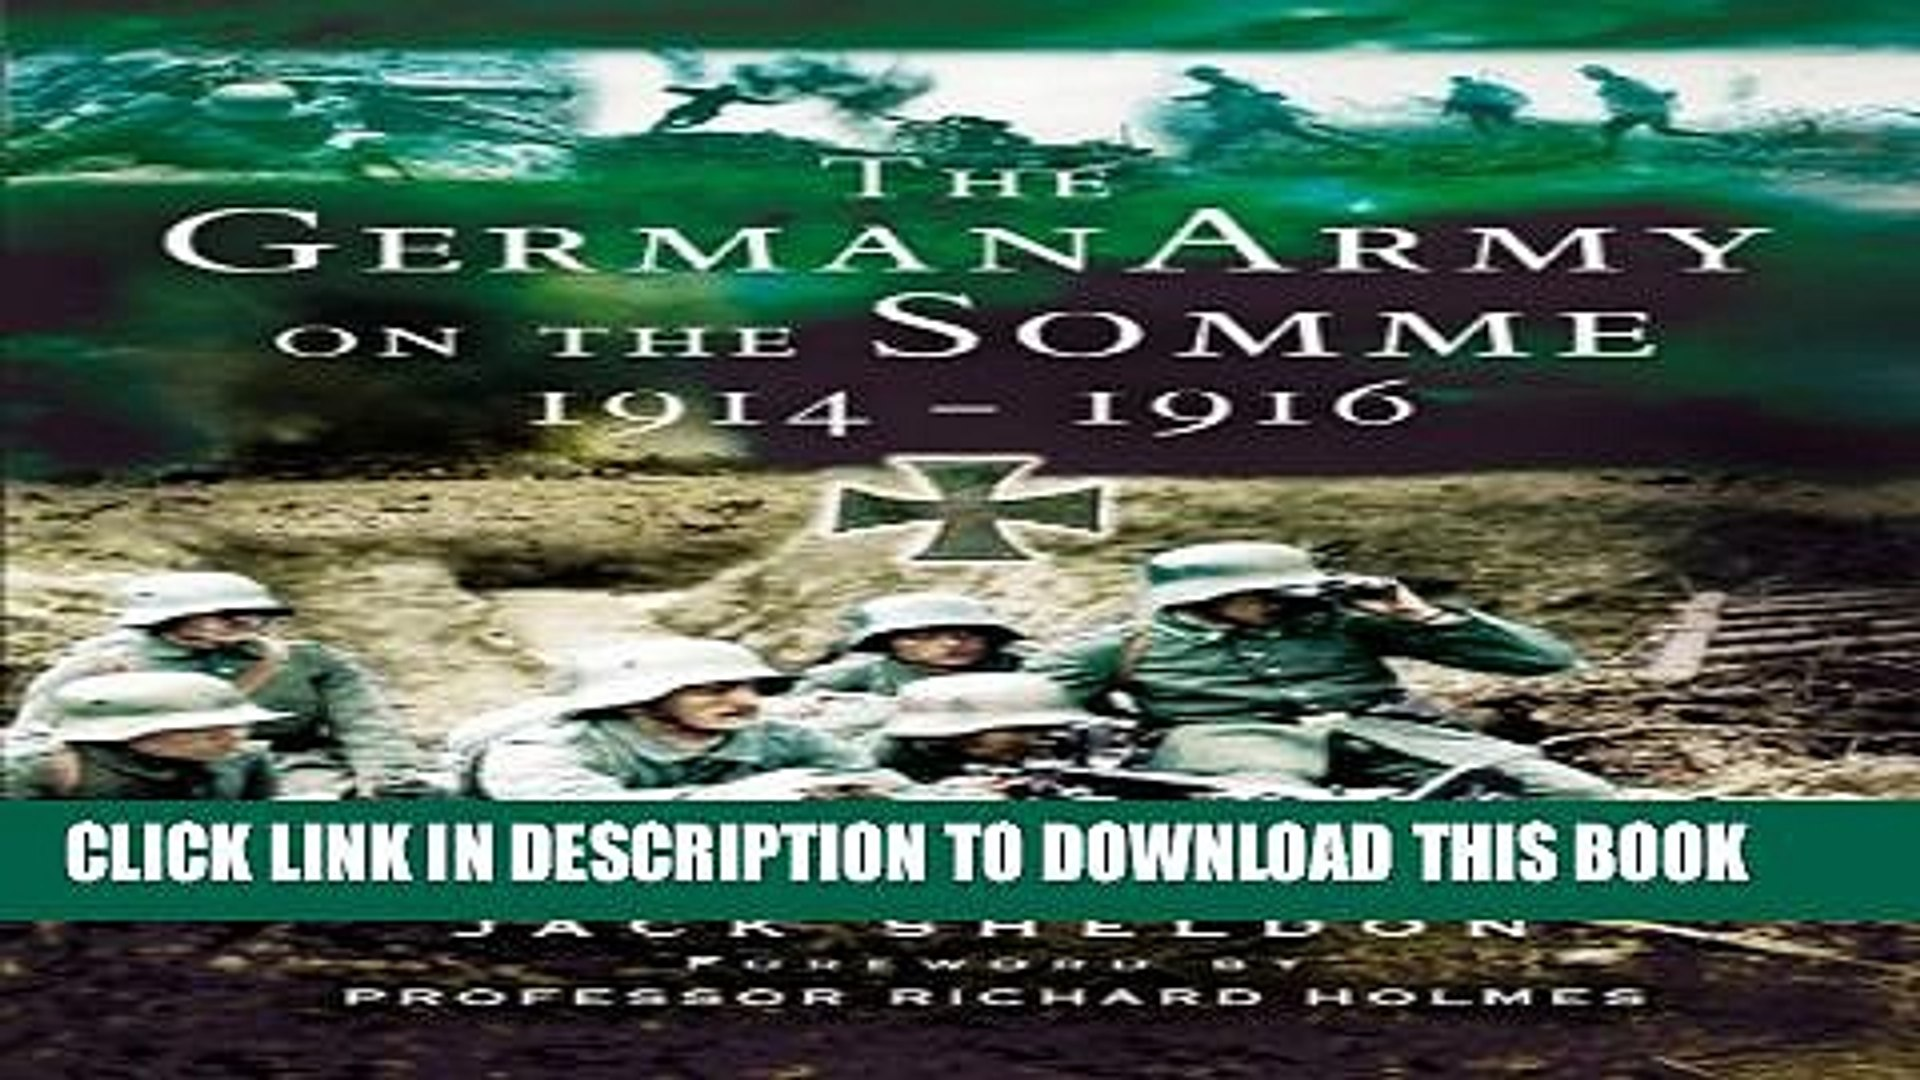 [PDF] German Army on the Somme 1914-1916 Popular Collection